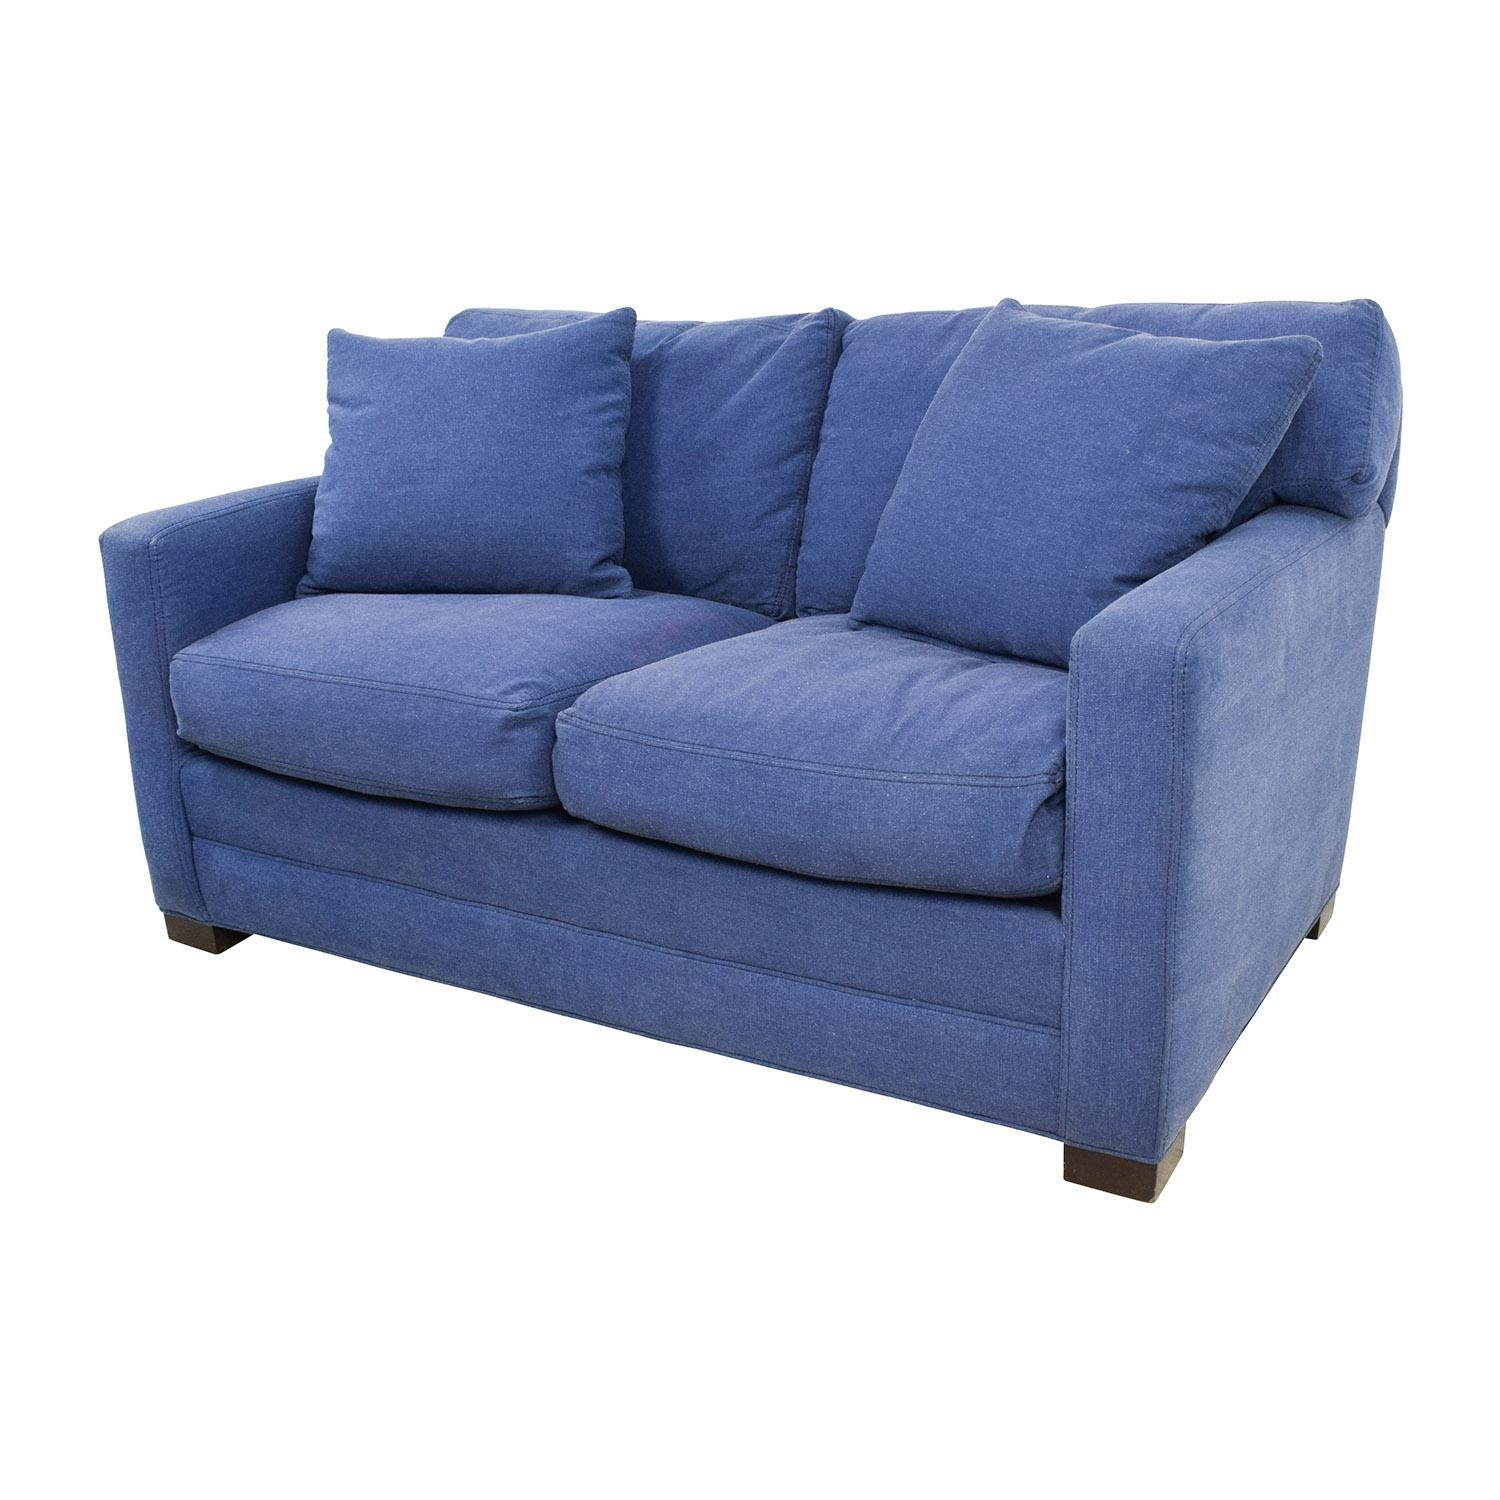 79% Off - Lee Industries Lee Industries Denim Blue Loveseat / Sofas with regard to Denim Loveseats